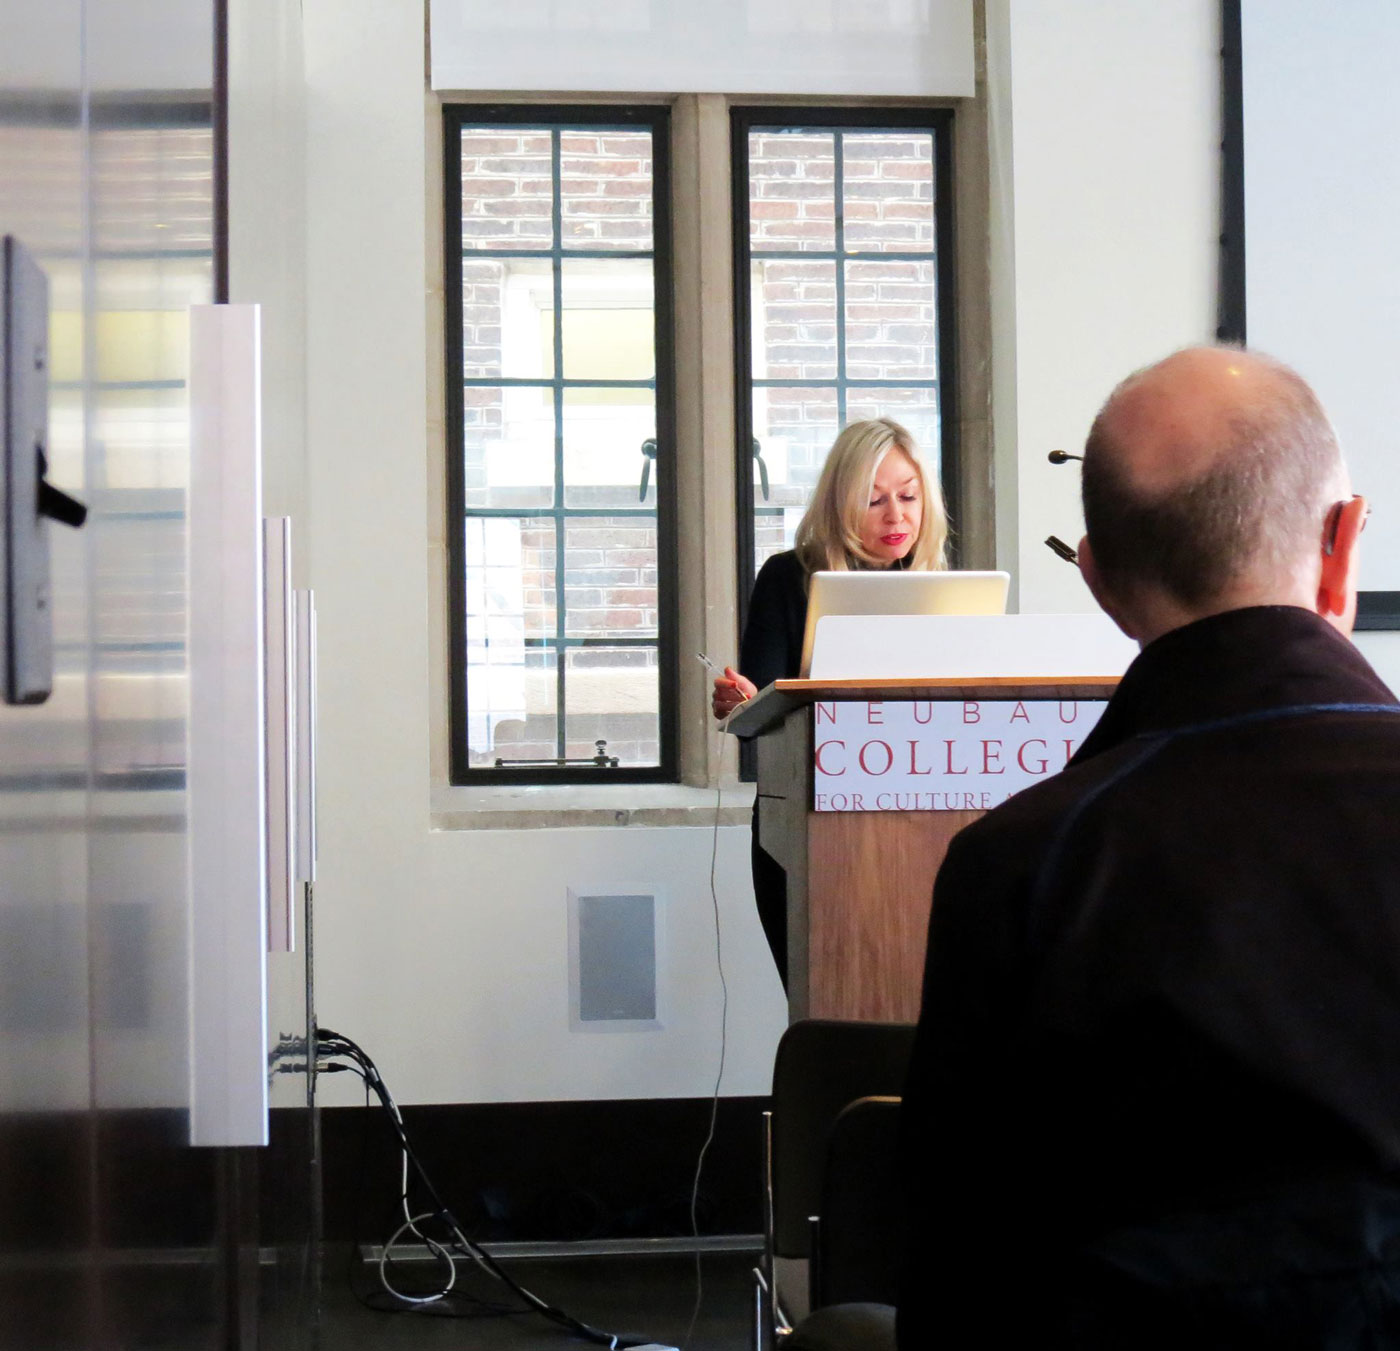 person speaks at a lectern as others look on